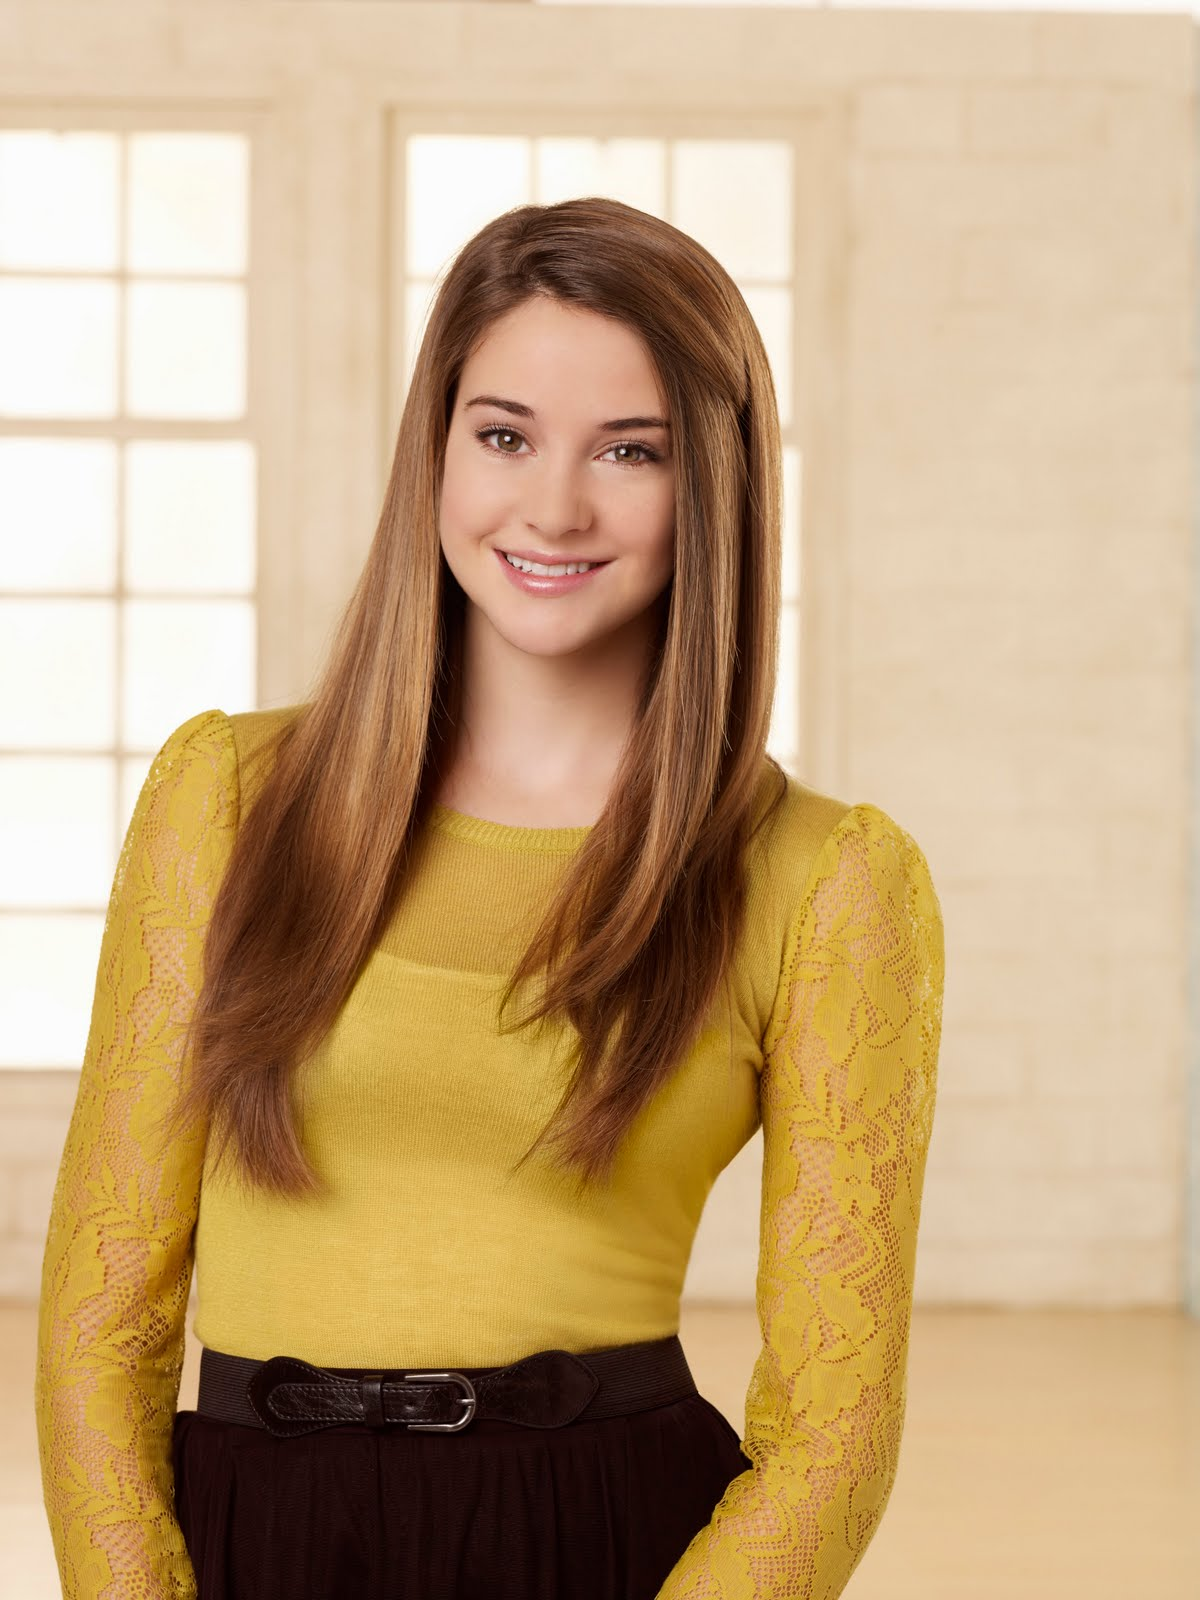 who plays Amy Juergens on The Sceret Life of the American Teenager